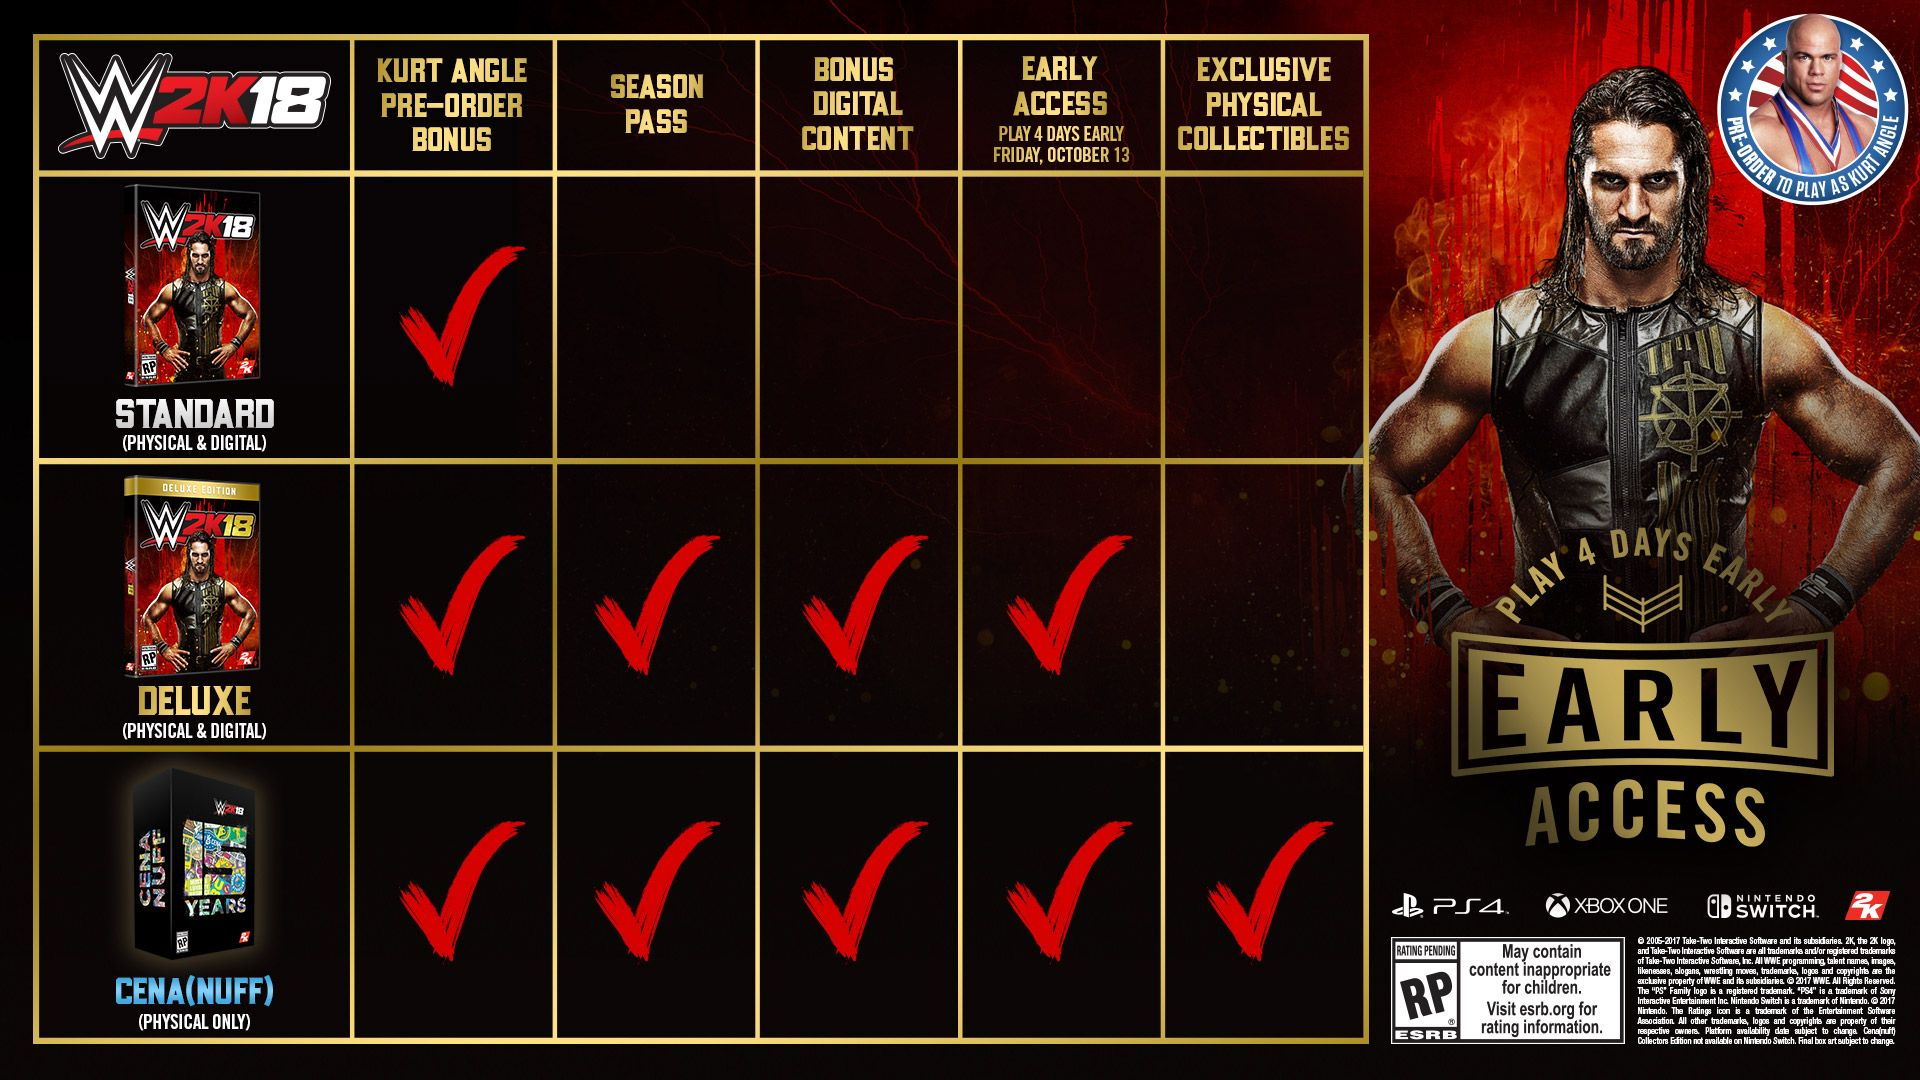 wwe supercard scan codes season 4 how to get them